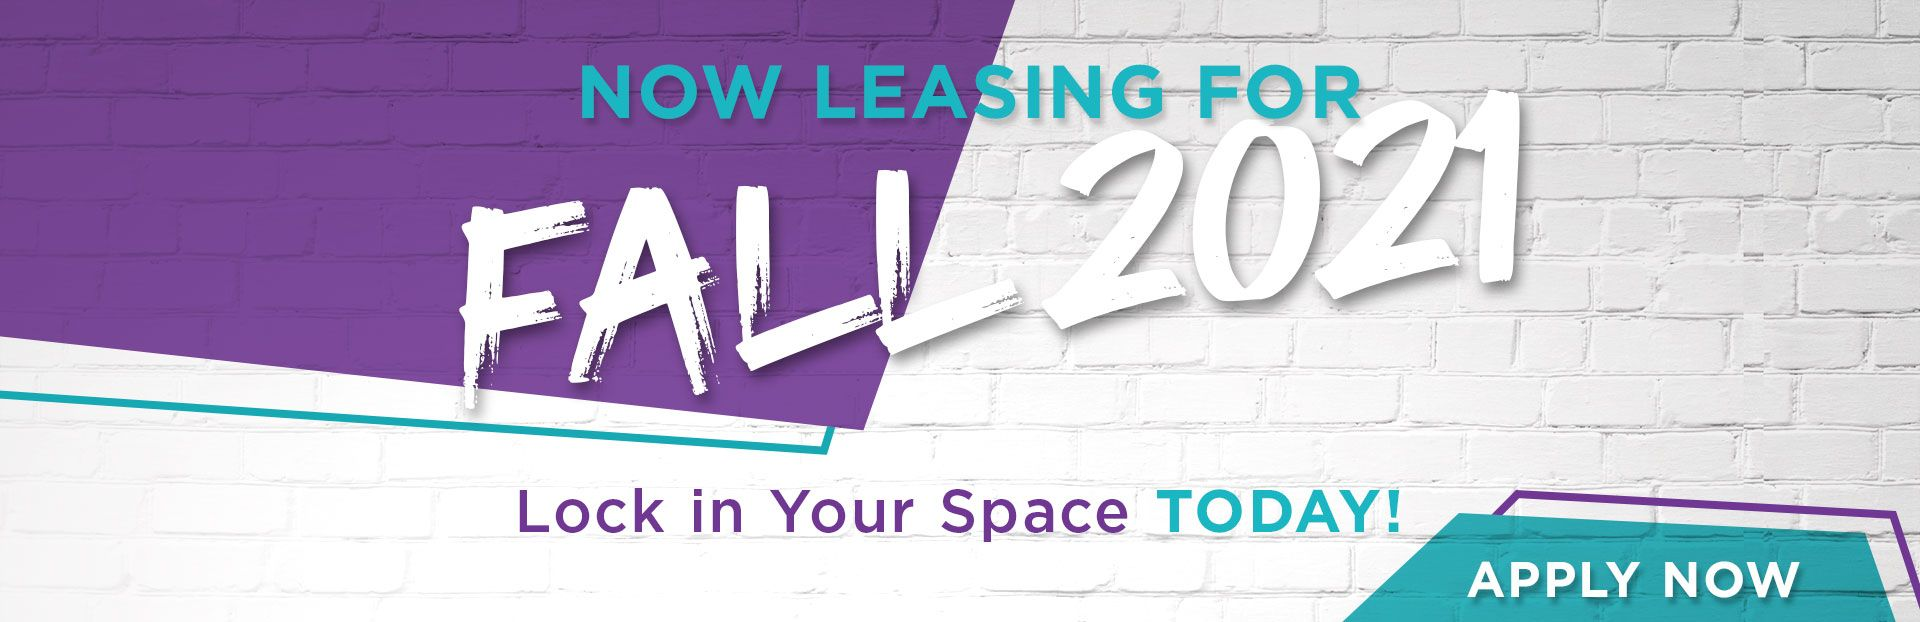 Now Leasing for Fall 2021. Lock in Your Space Today! | Apply Now